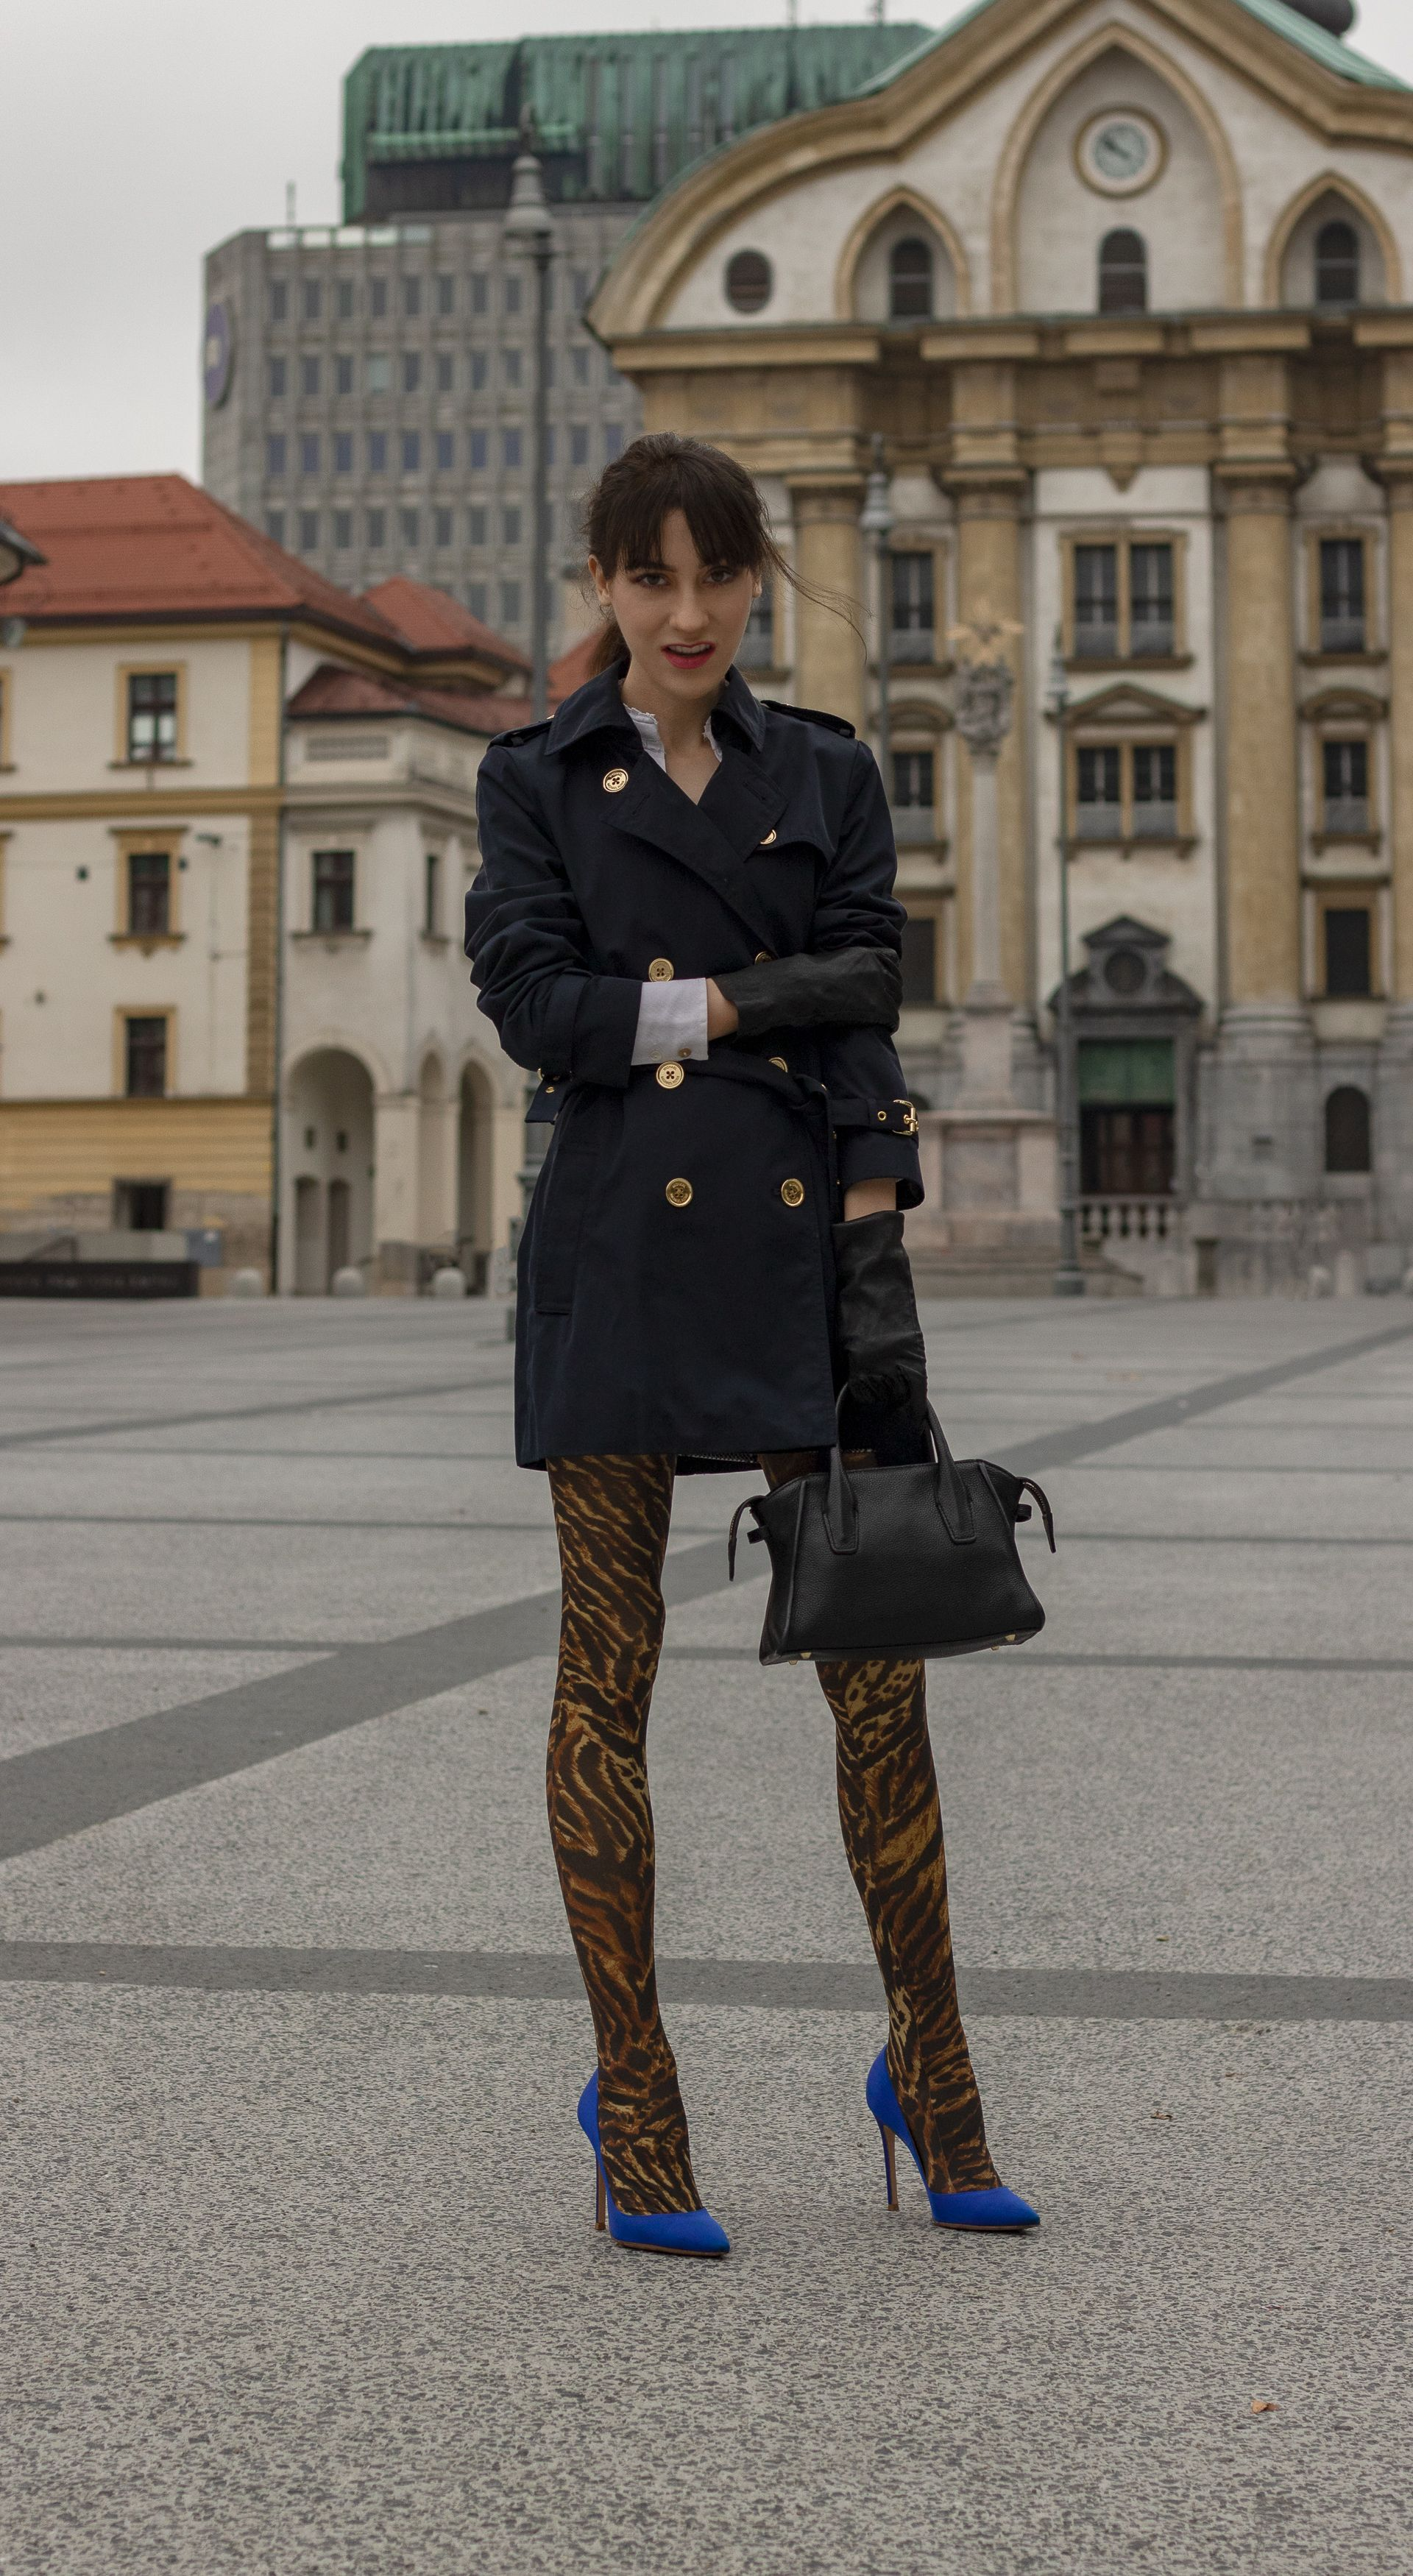 Animal print is the latest fashion trend to wear when